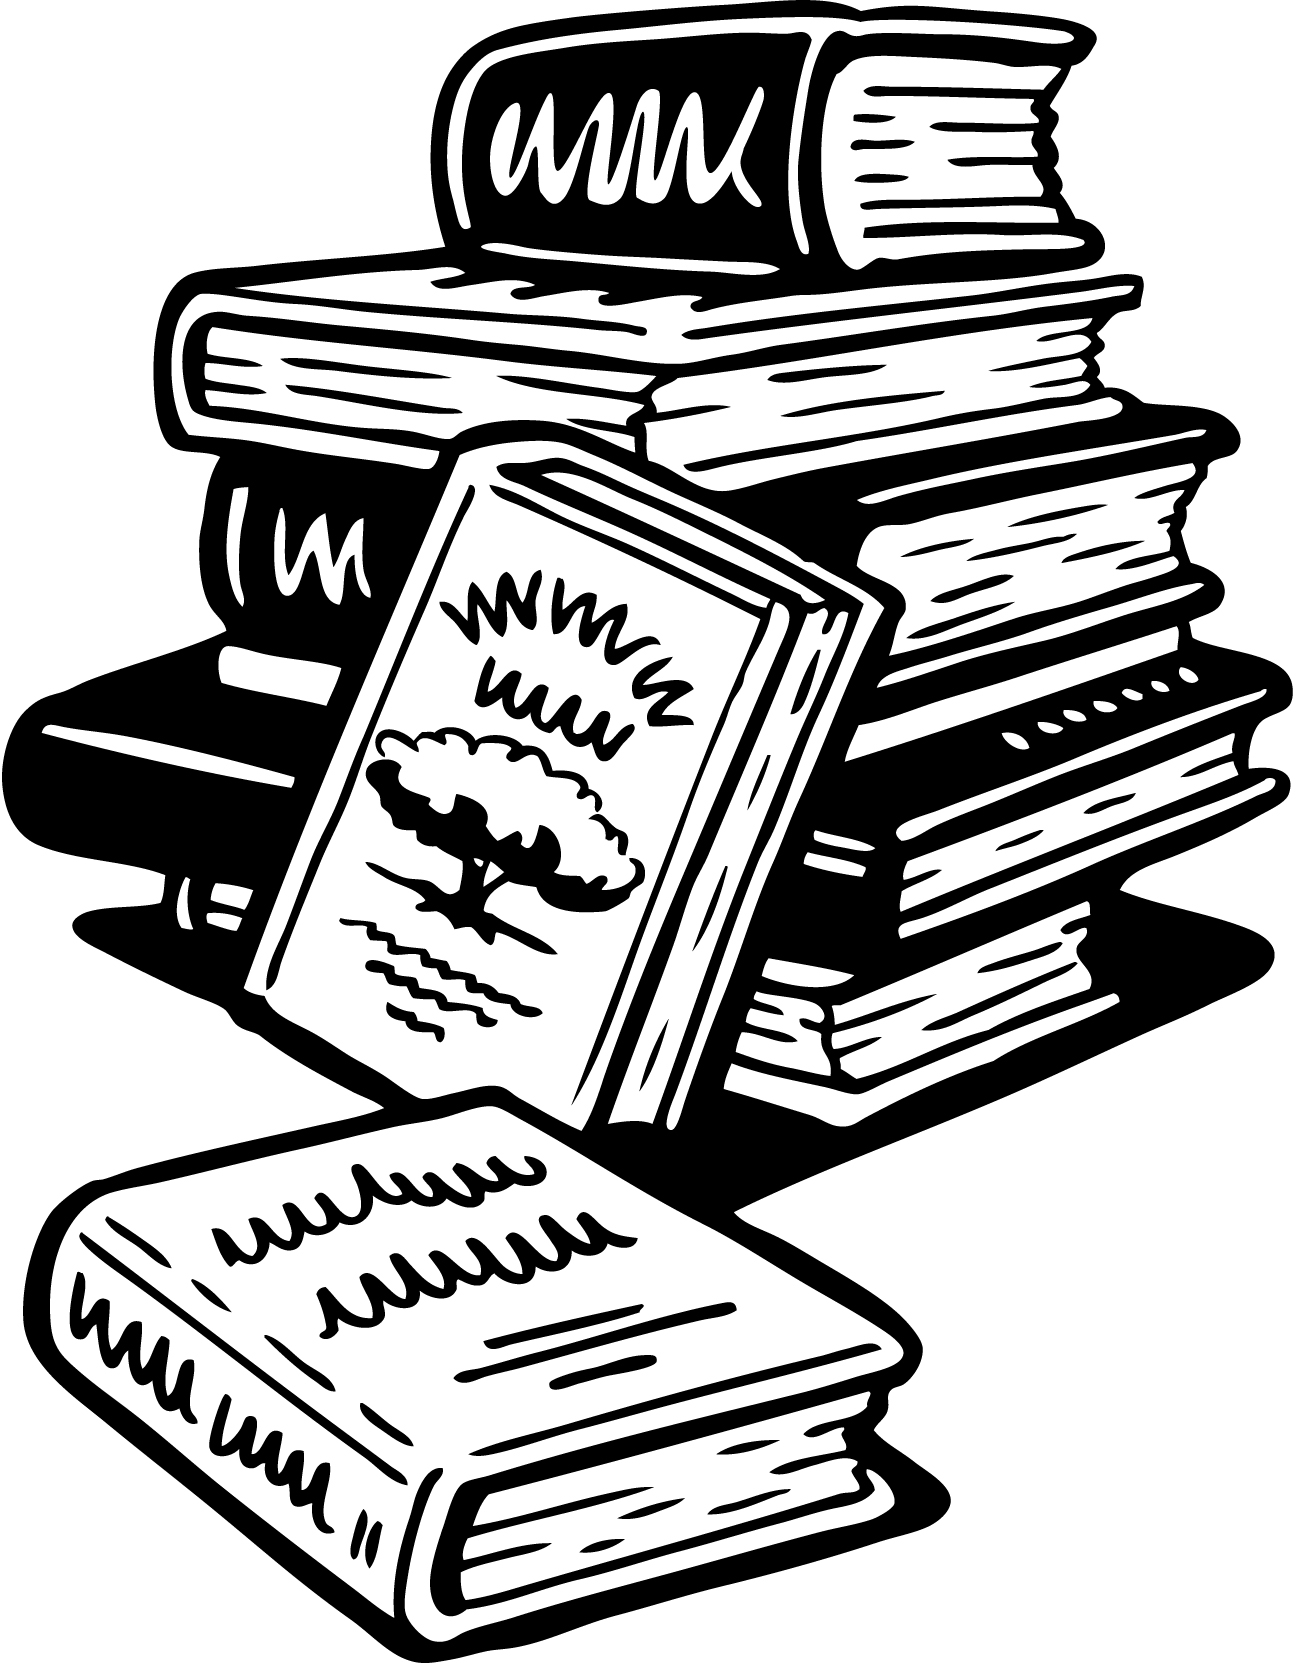 Book black and white stack of books clipart.